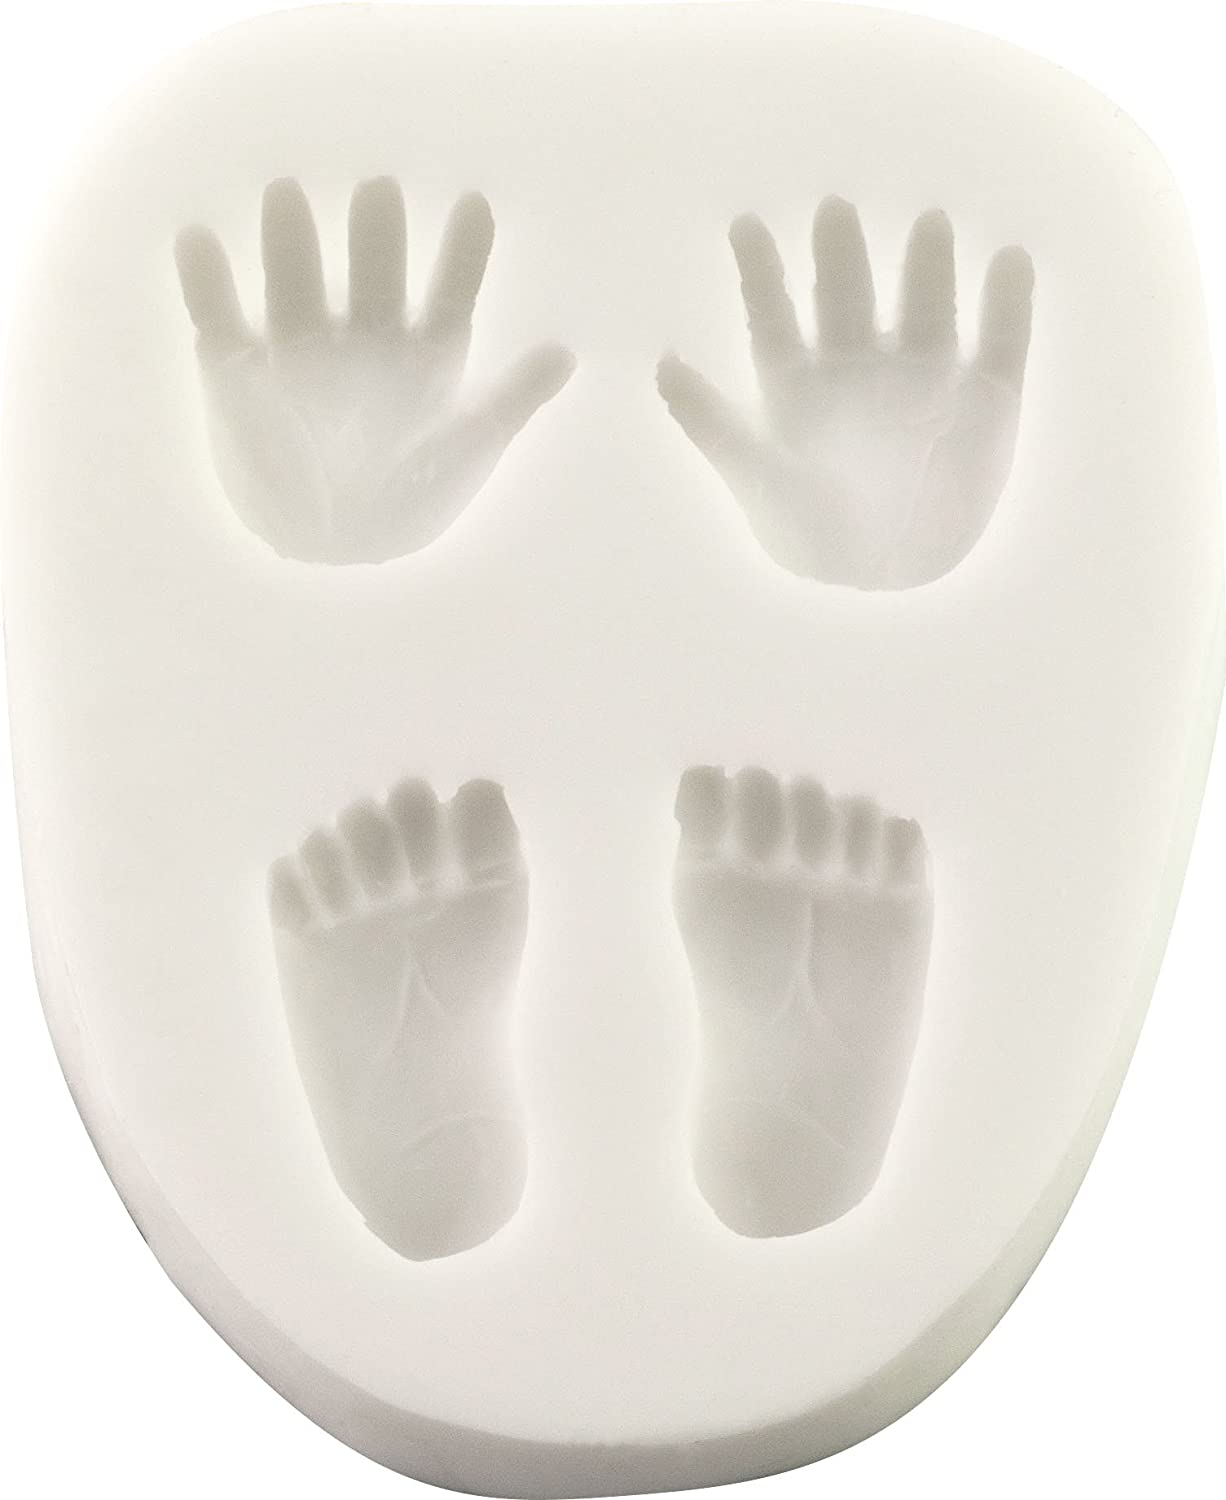 Small Hand Foot Silicone Mold Fondant Mould Cake DecoratingJC